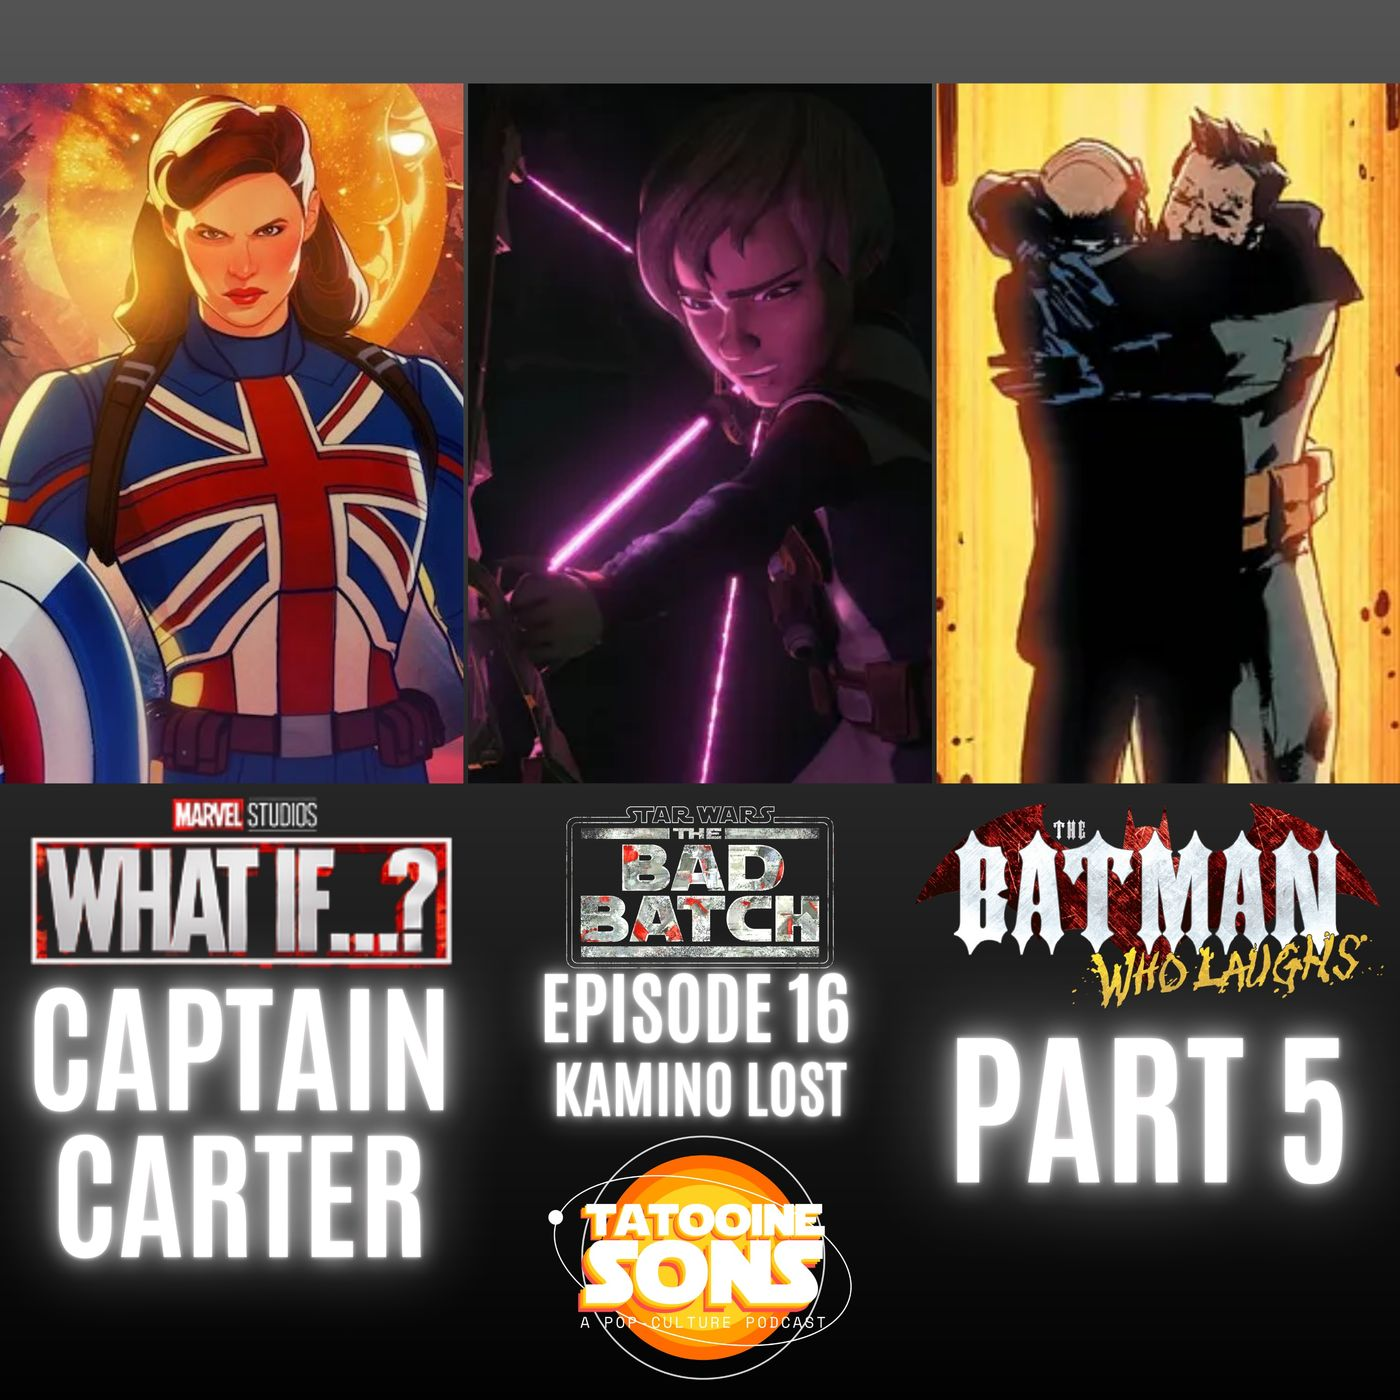 The Bad Batch Finale Kamino Lost Reaction - Marvel- What If Episode 1 Captain Carter Review - The Batman Who Laughs- Part 5